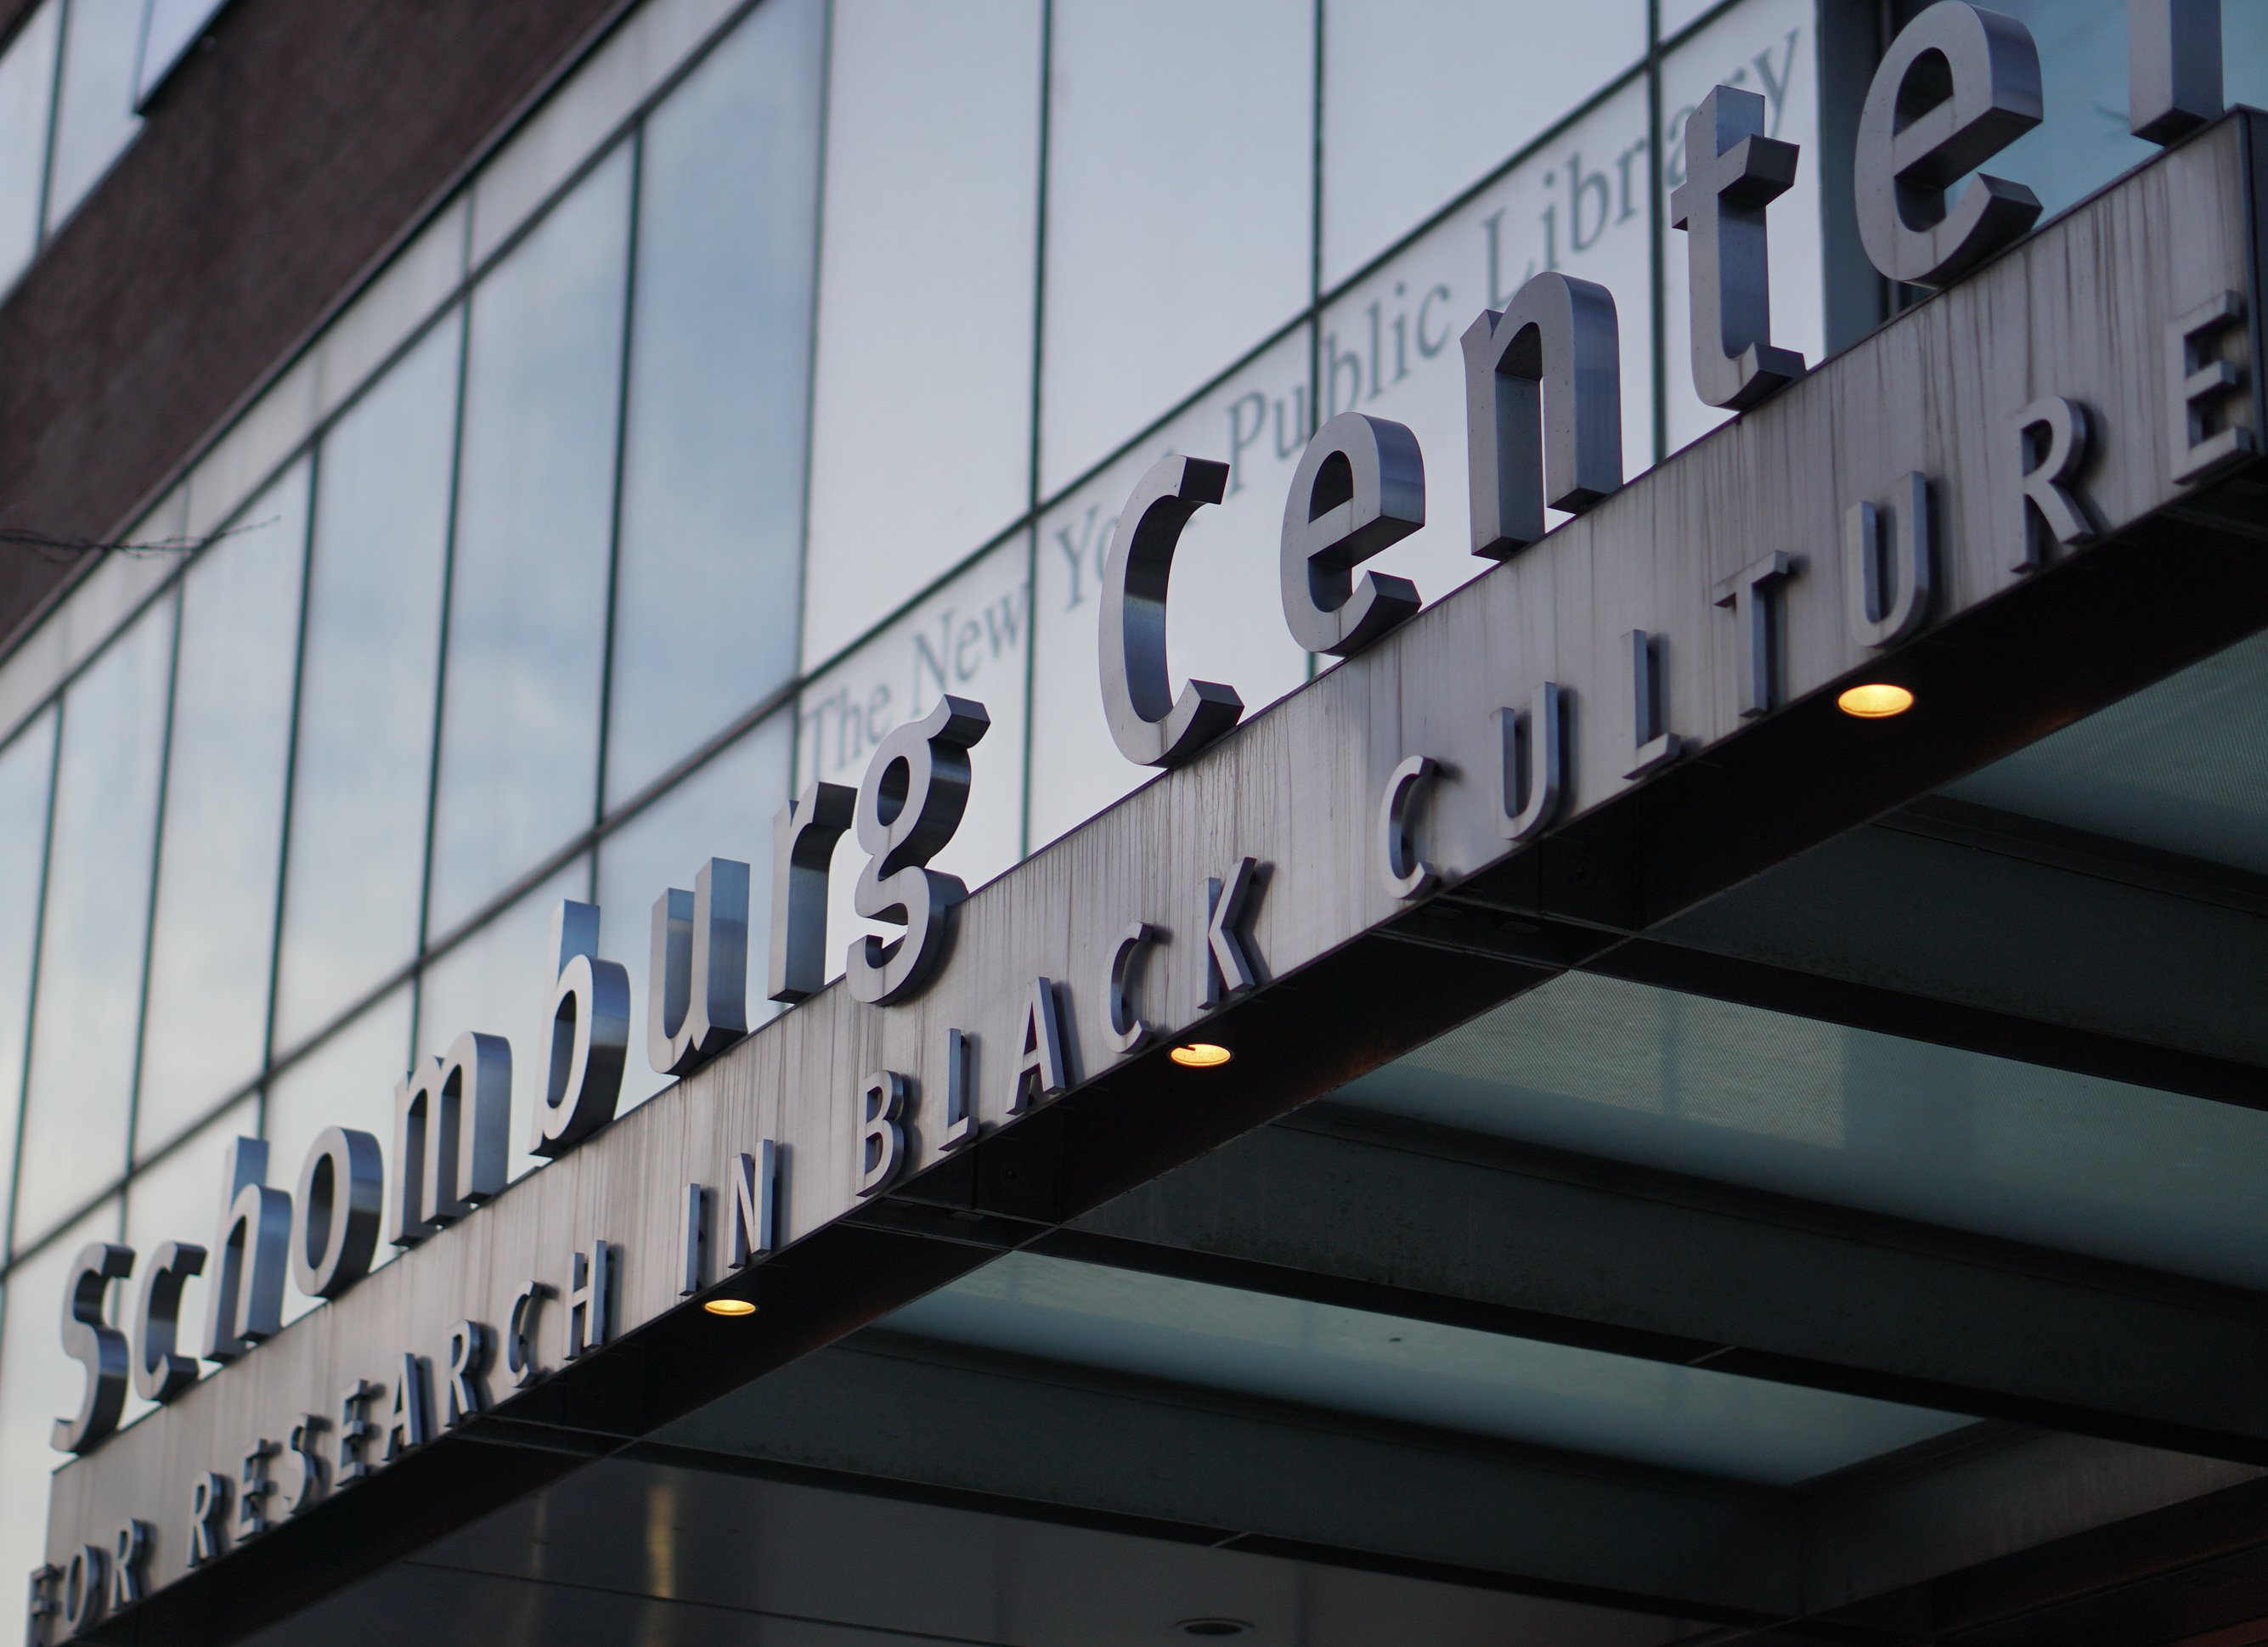 Schomburg Centre